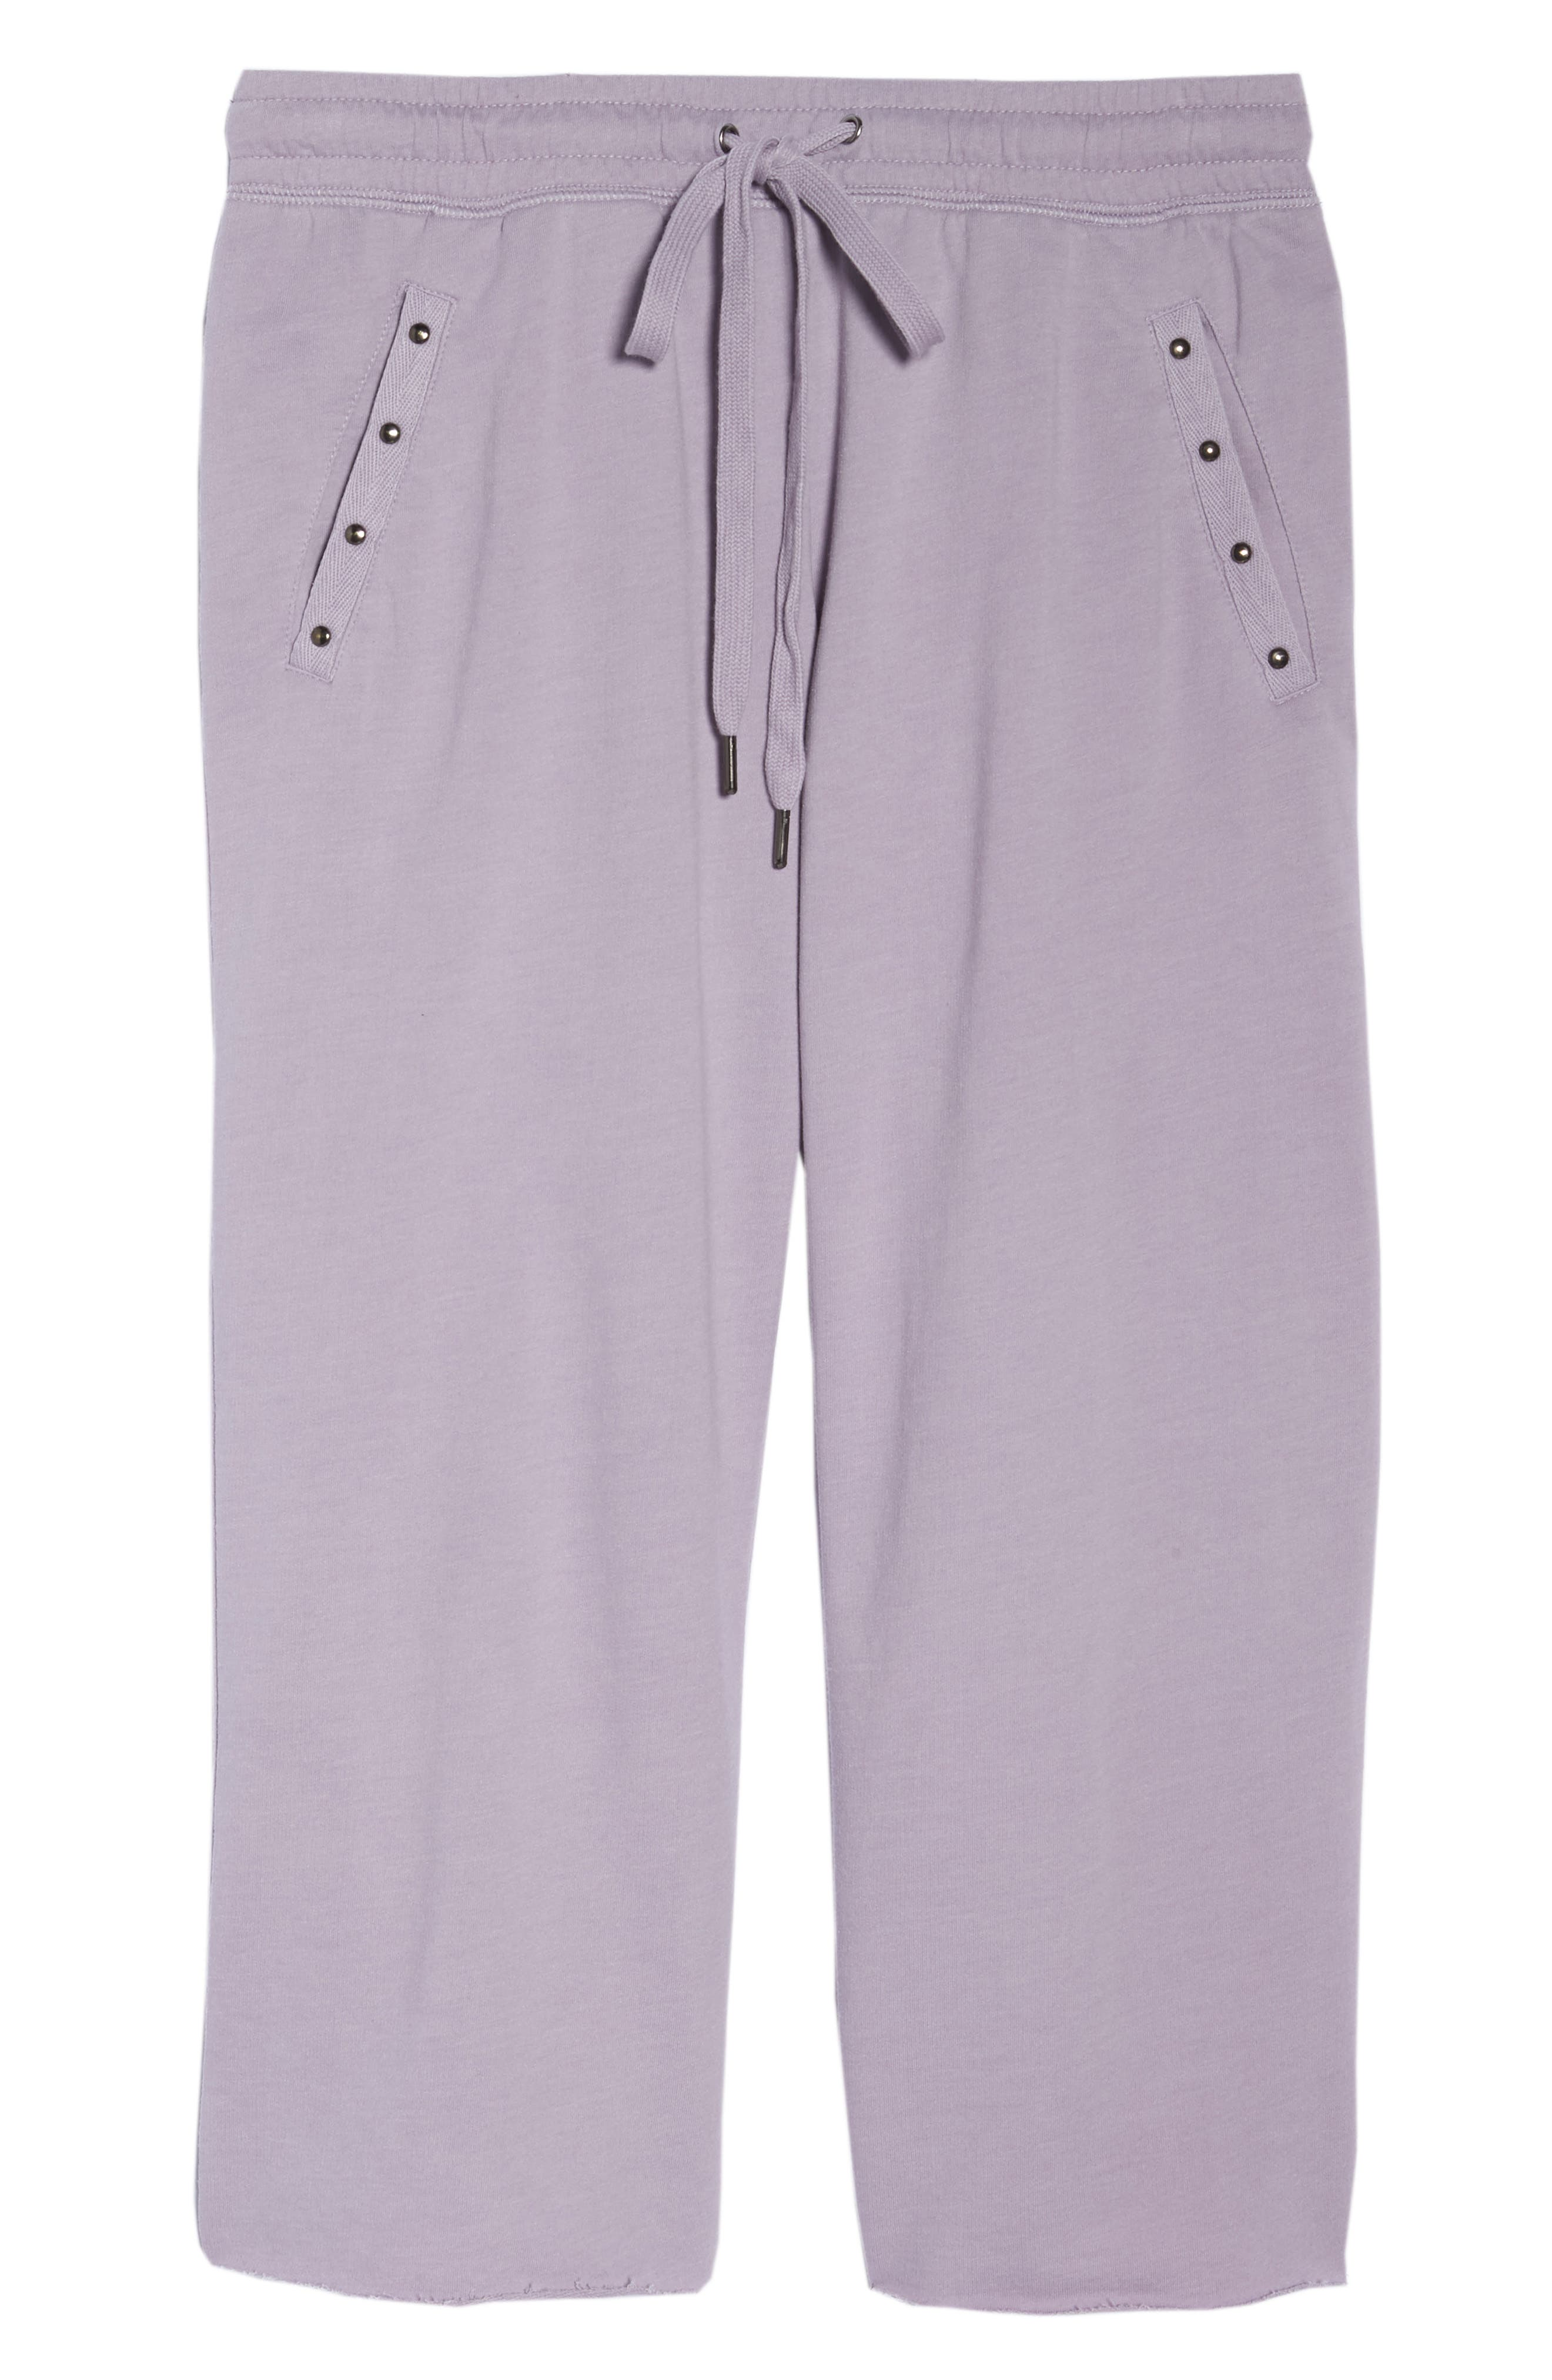 Studded Crop Pajama Pants,                             Alternate thumbnail 7, color,                             Orchid